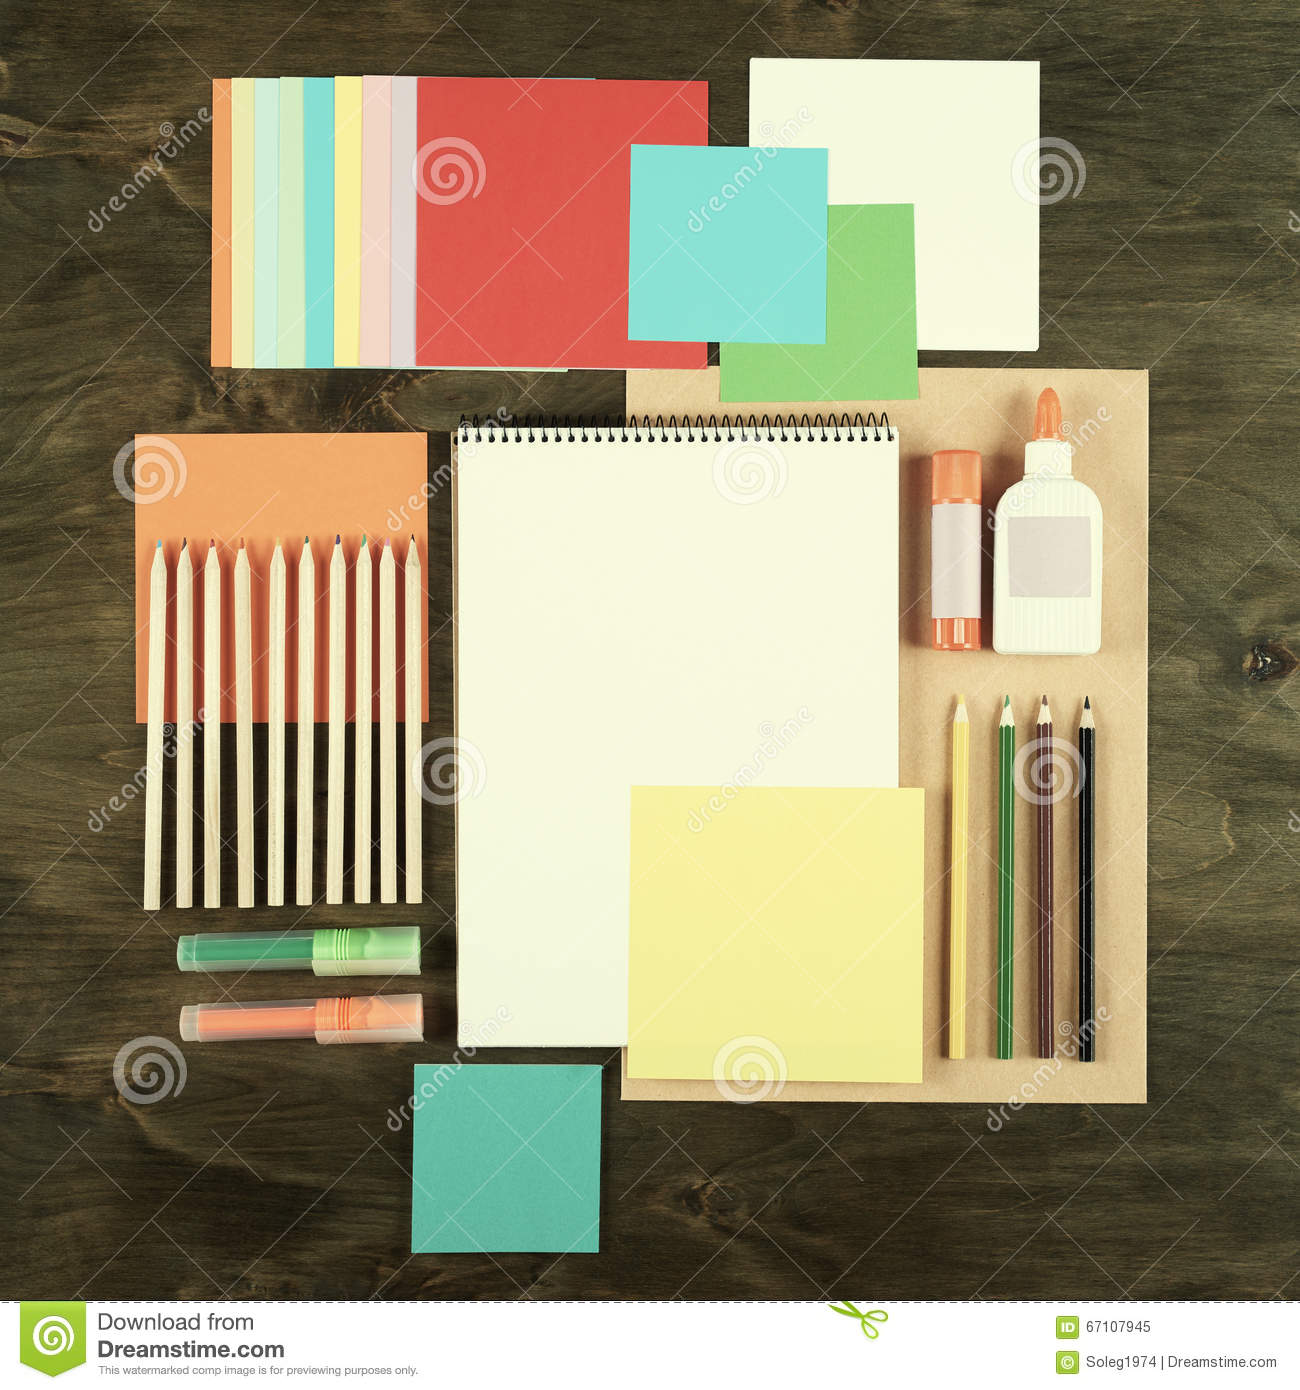 Background image 7945 - Flat Lay Office Tools And Supplies Education Background With Stationery On Wood Flat Design Of Creative Office Workspace Workpl